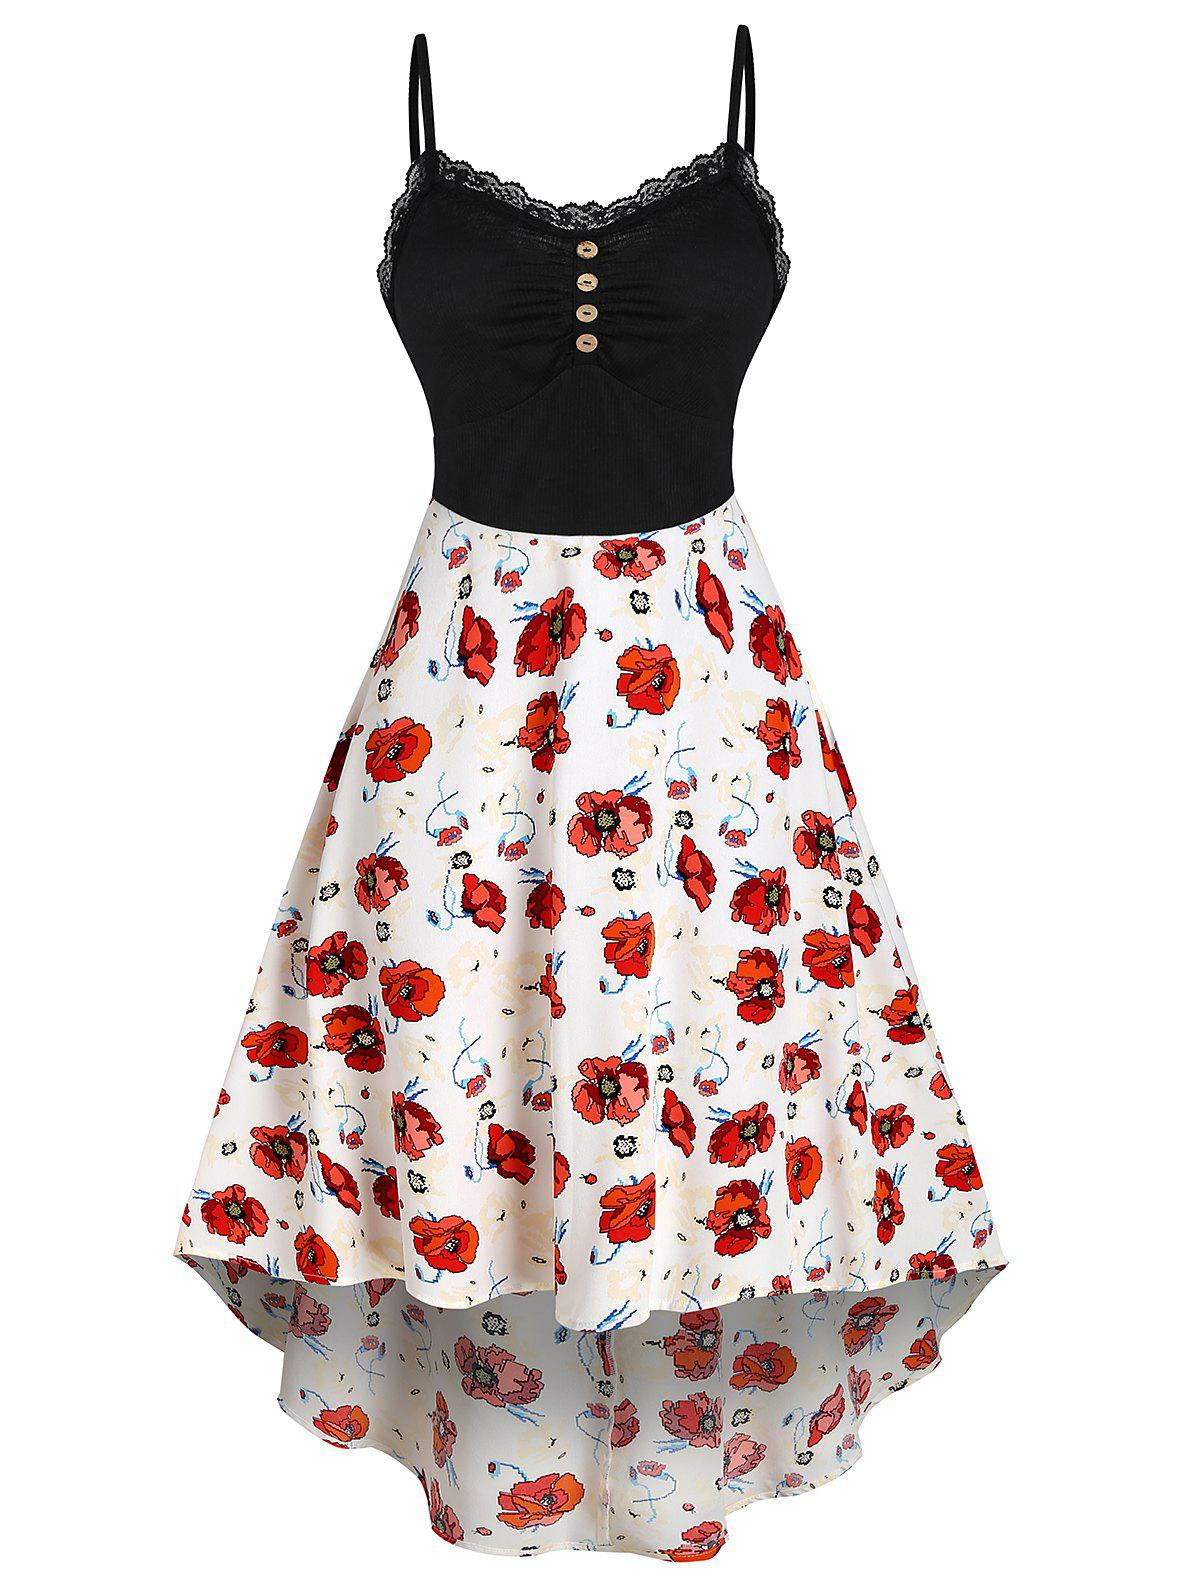 Shop Lace Button Knit Flower Printed Splicing Dress